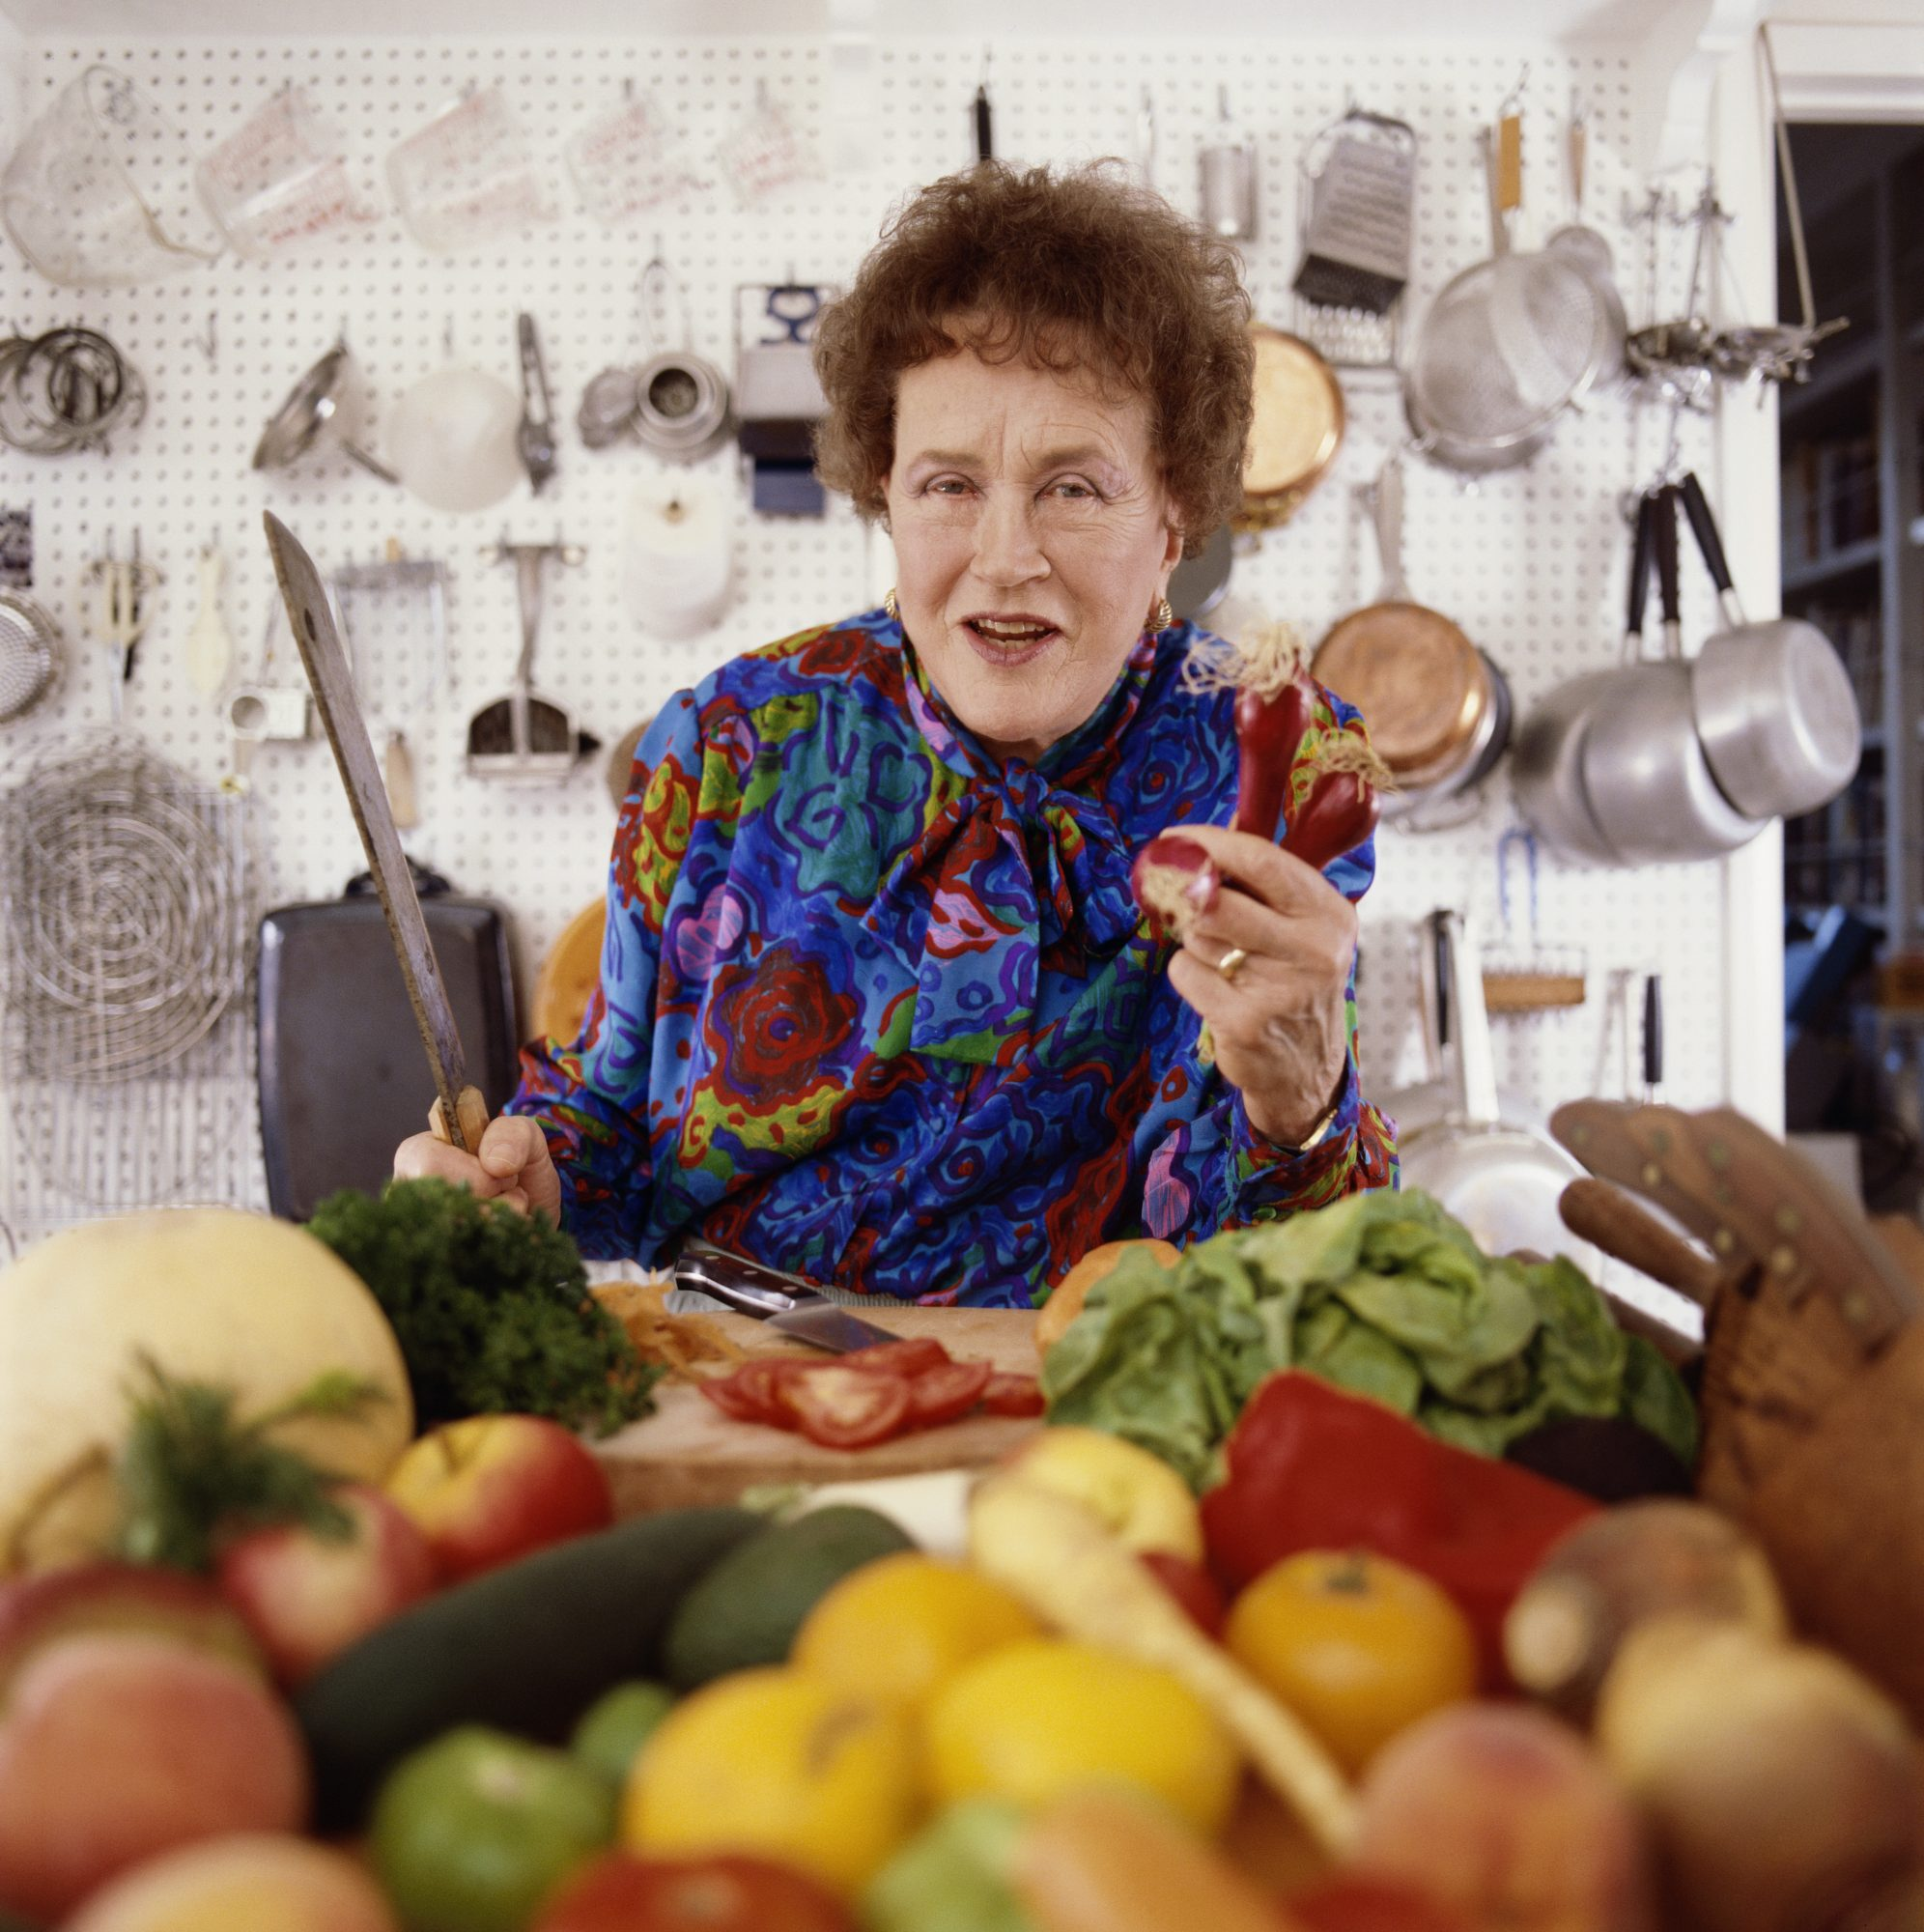 Celebrate Julia Child's 107th Birthday with a Trip to Her Kitchen